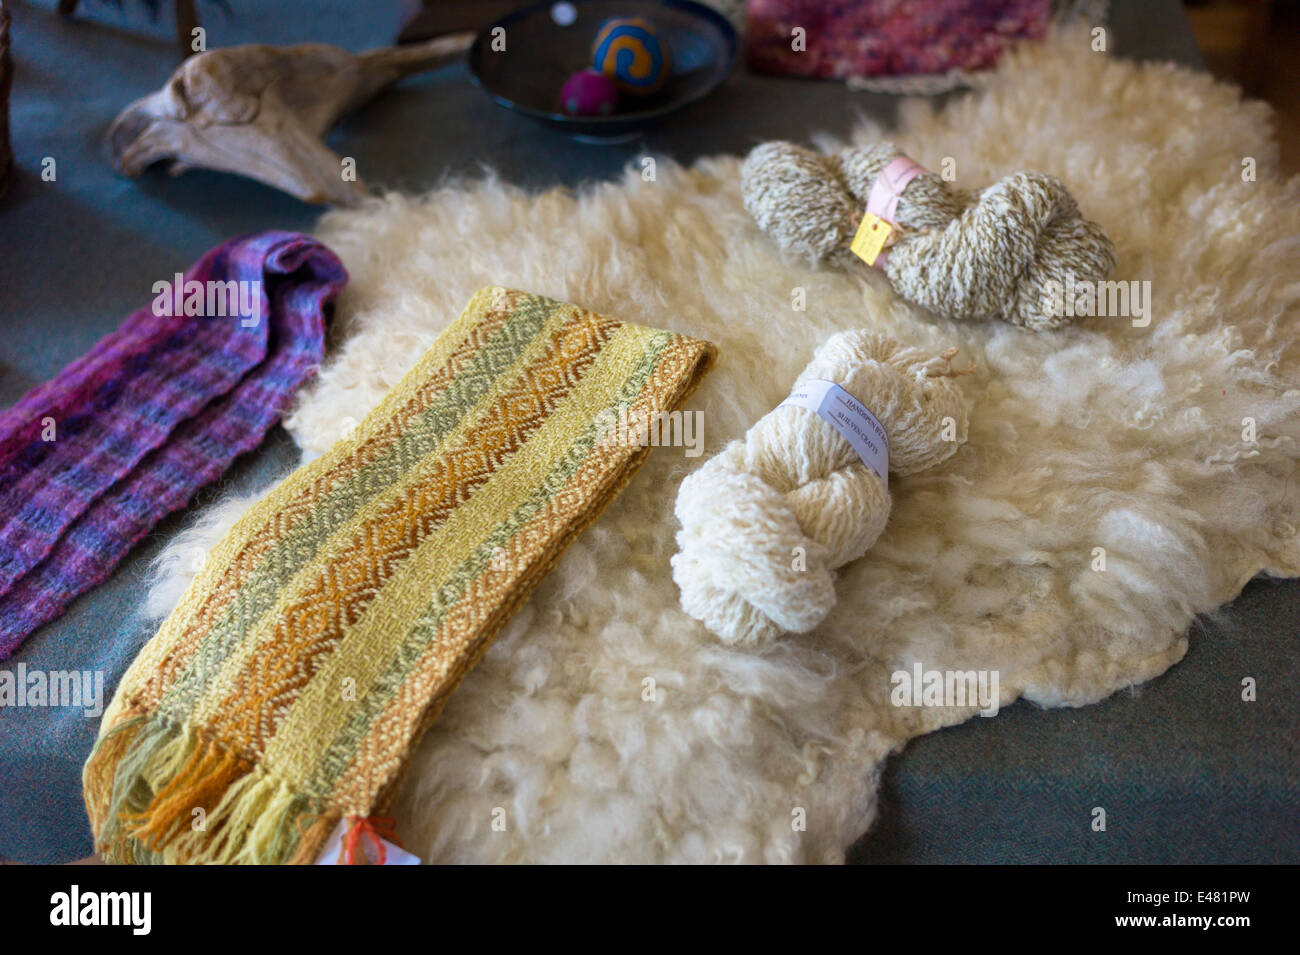 Fleece and skeins of local wool - Lambswool - from Highland sheep at Croft Wools and Weavers in the Highlands of - Stock Image